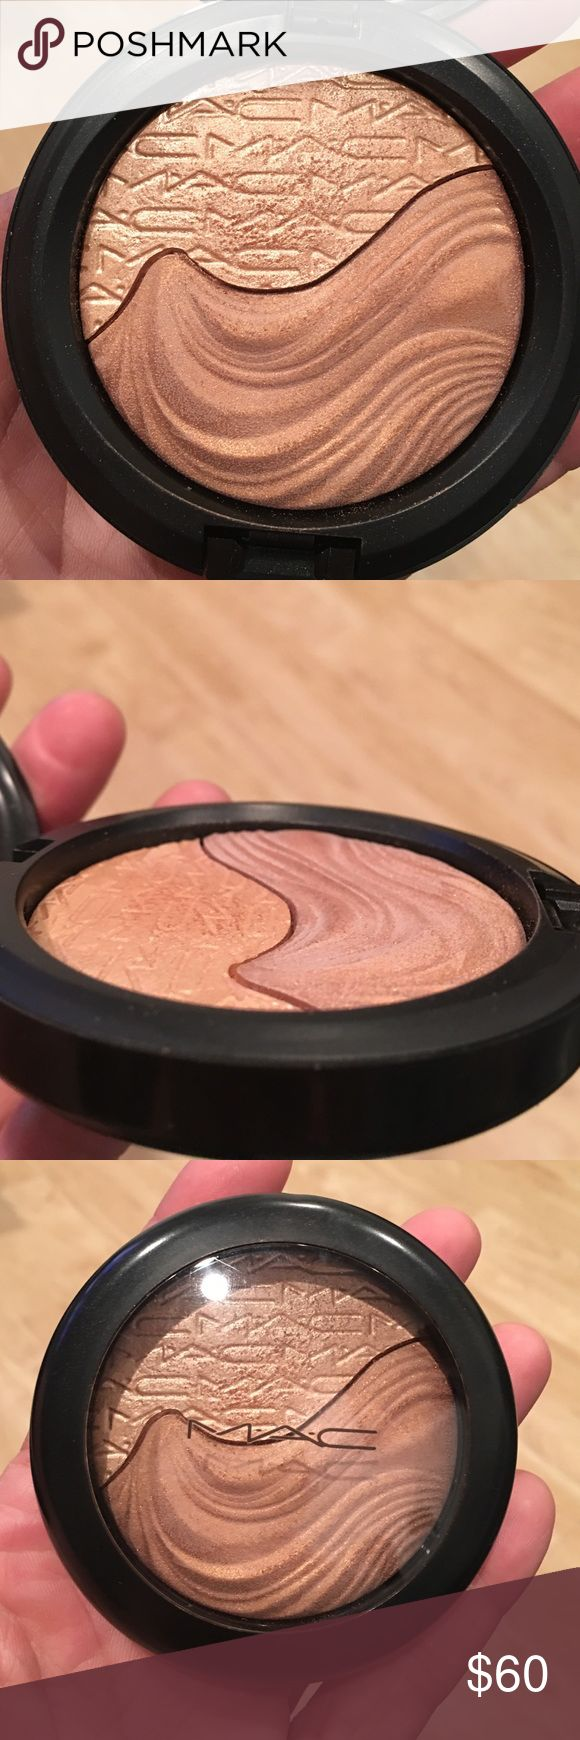 MAC EXTRA DIMENSION SKINFINISH DOUBLE DEFINITION MAC EXTRA DIMENSION SKINFINISH DOUBLE DEFINITION. LIGHTLY SWATCHED 1x. AUTHENTIC ITEMS ONLY! NO FAKES HERE! MAC Cosmetics Makeup Bronzer